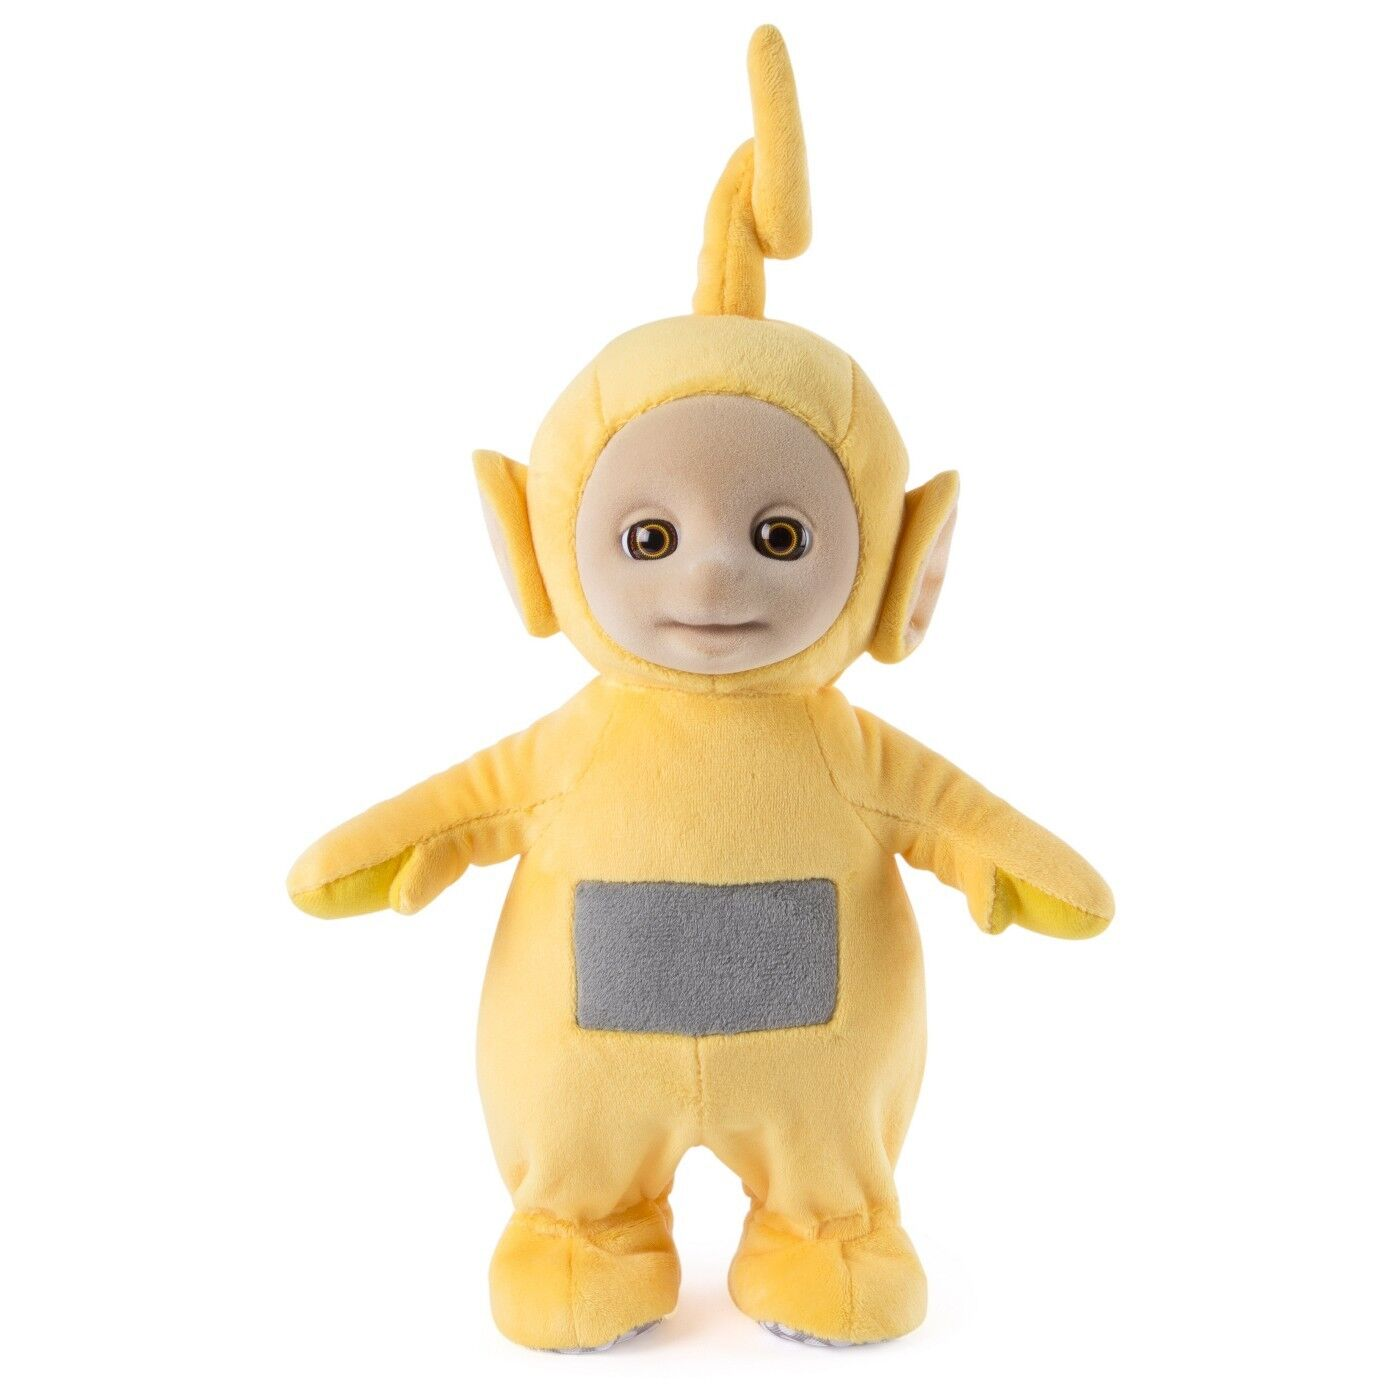 Teletubbies Teletubbie Jumping Laa Laa Soft Plush Stuffed Doll Toy 13